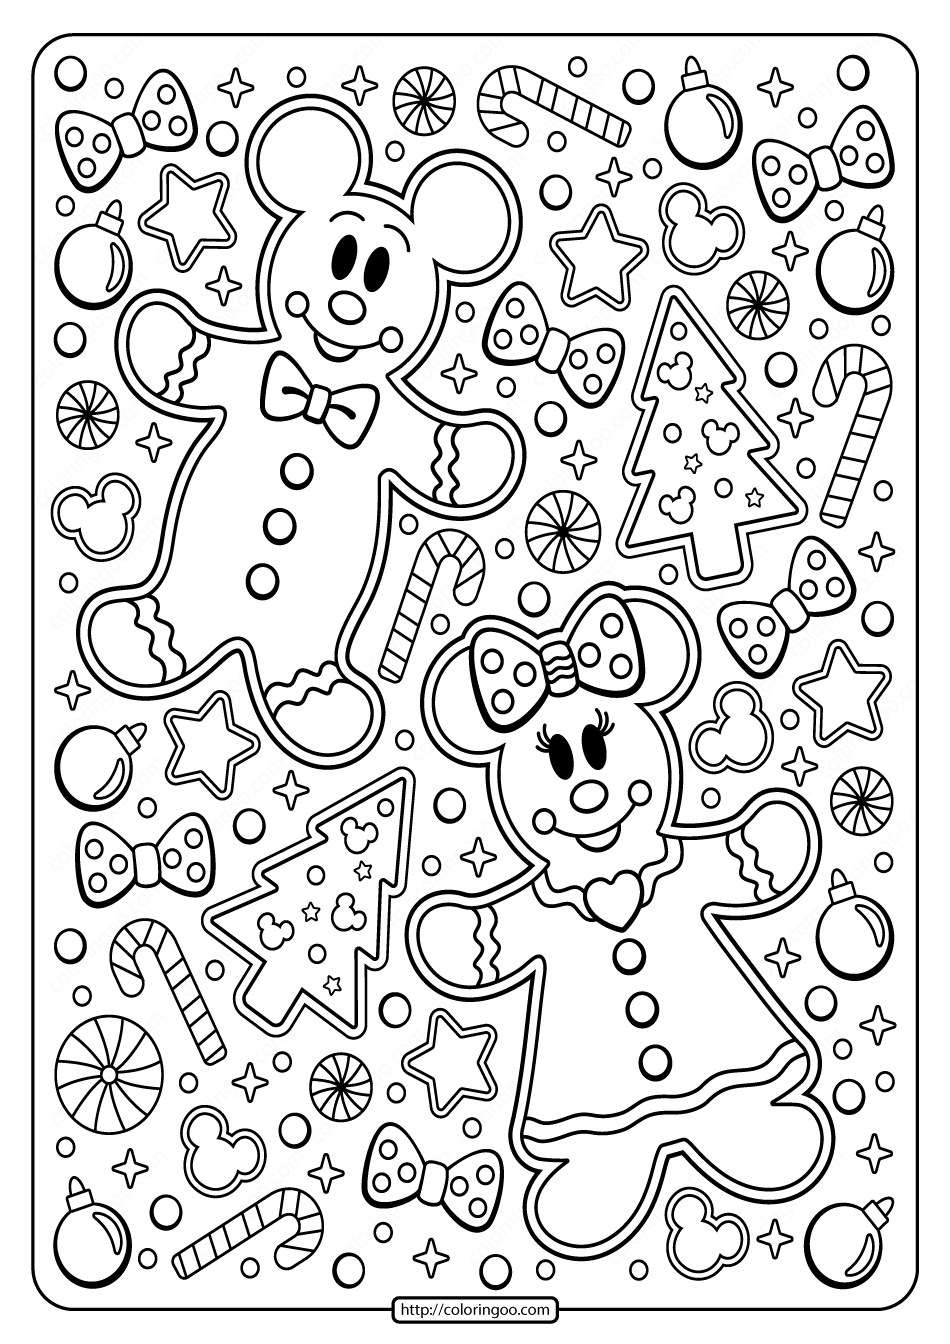 Mickey Minnie Mouse Holiday Coloring Page Kids Christmas Coloring Pages Mickey Mouse Coloring Pages Christmas Coloring Pages